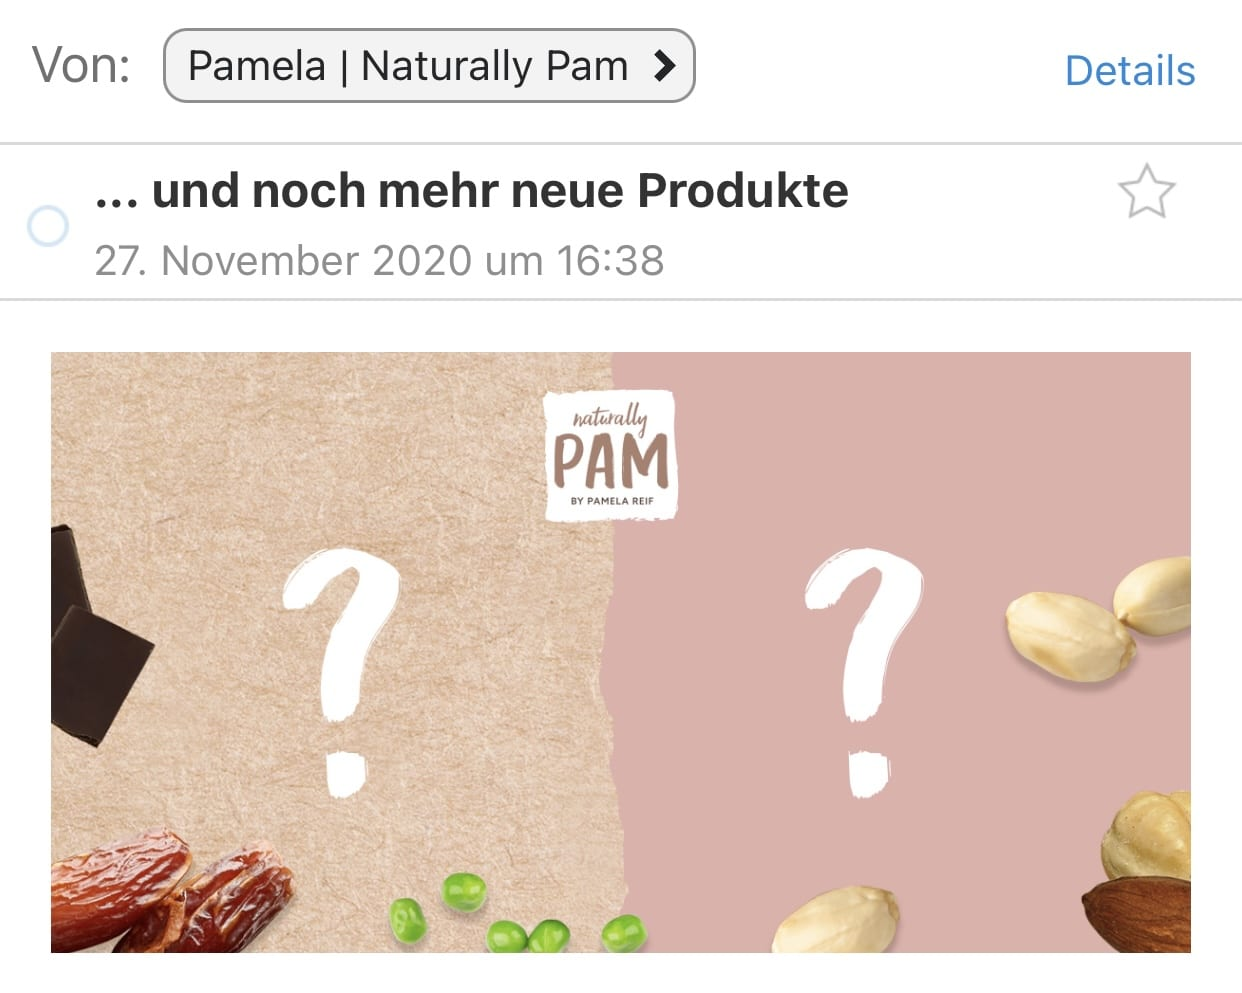 Naturally Pam Produkte